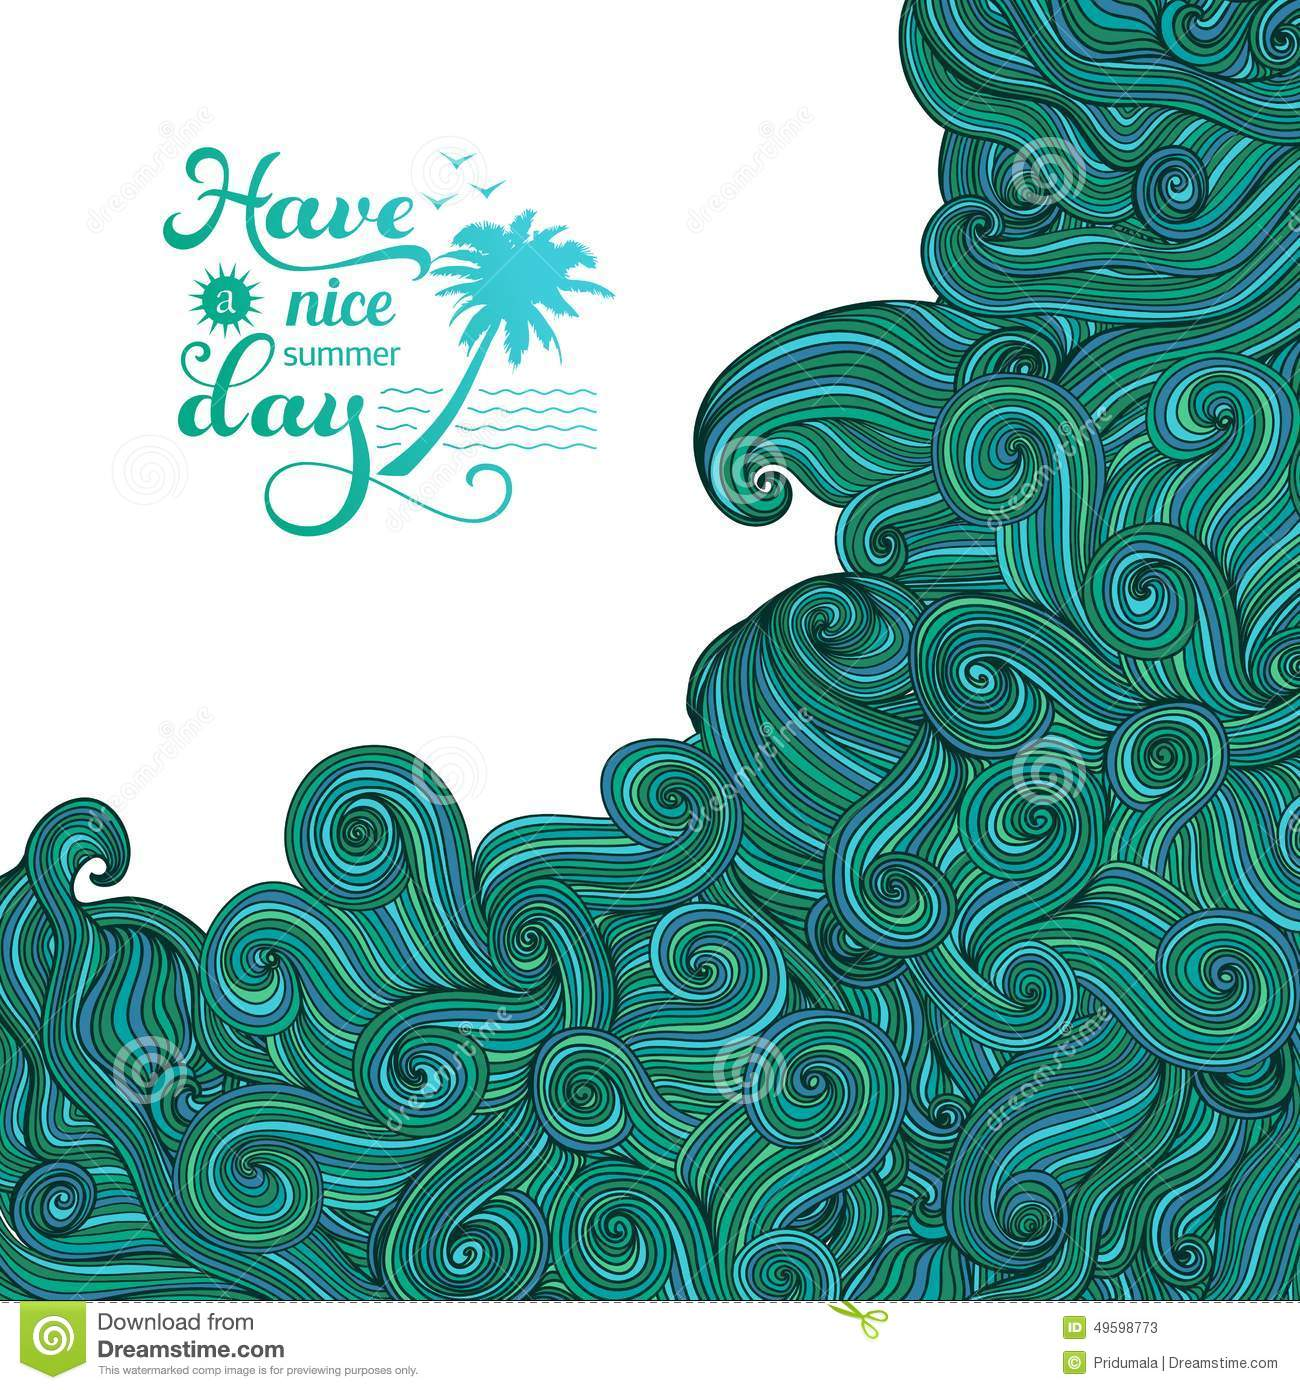 tsunami diagram with labels 2004 jeep wrangler wiring surfing logo design surf and waves cartoon vector